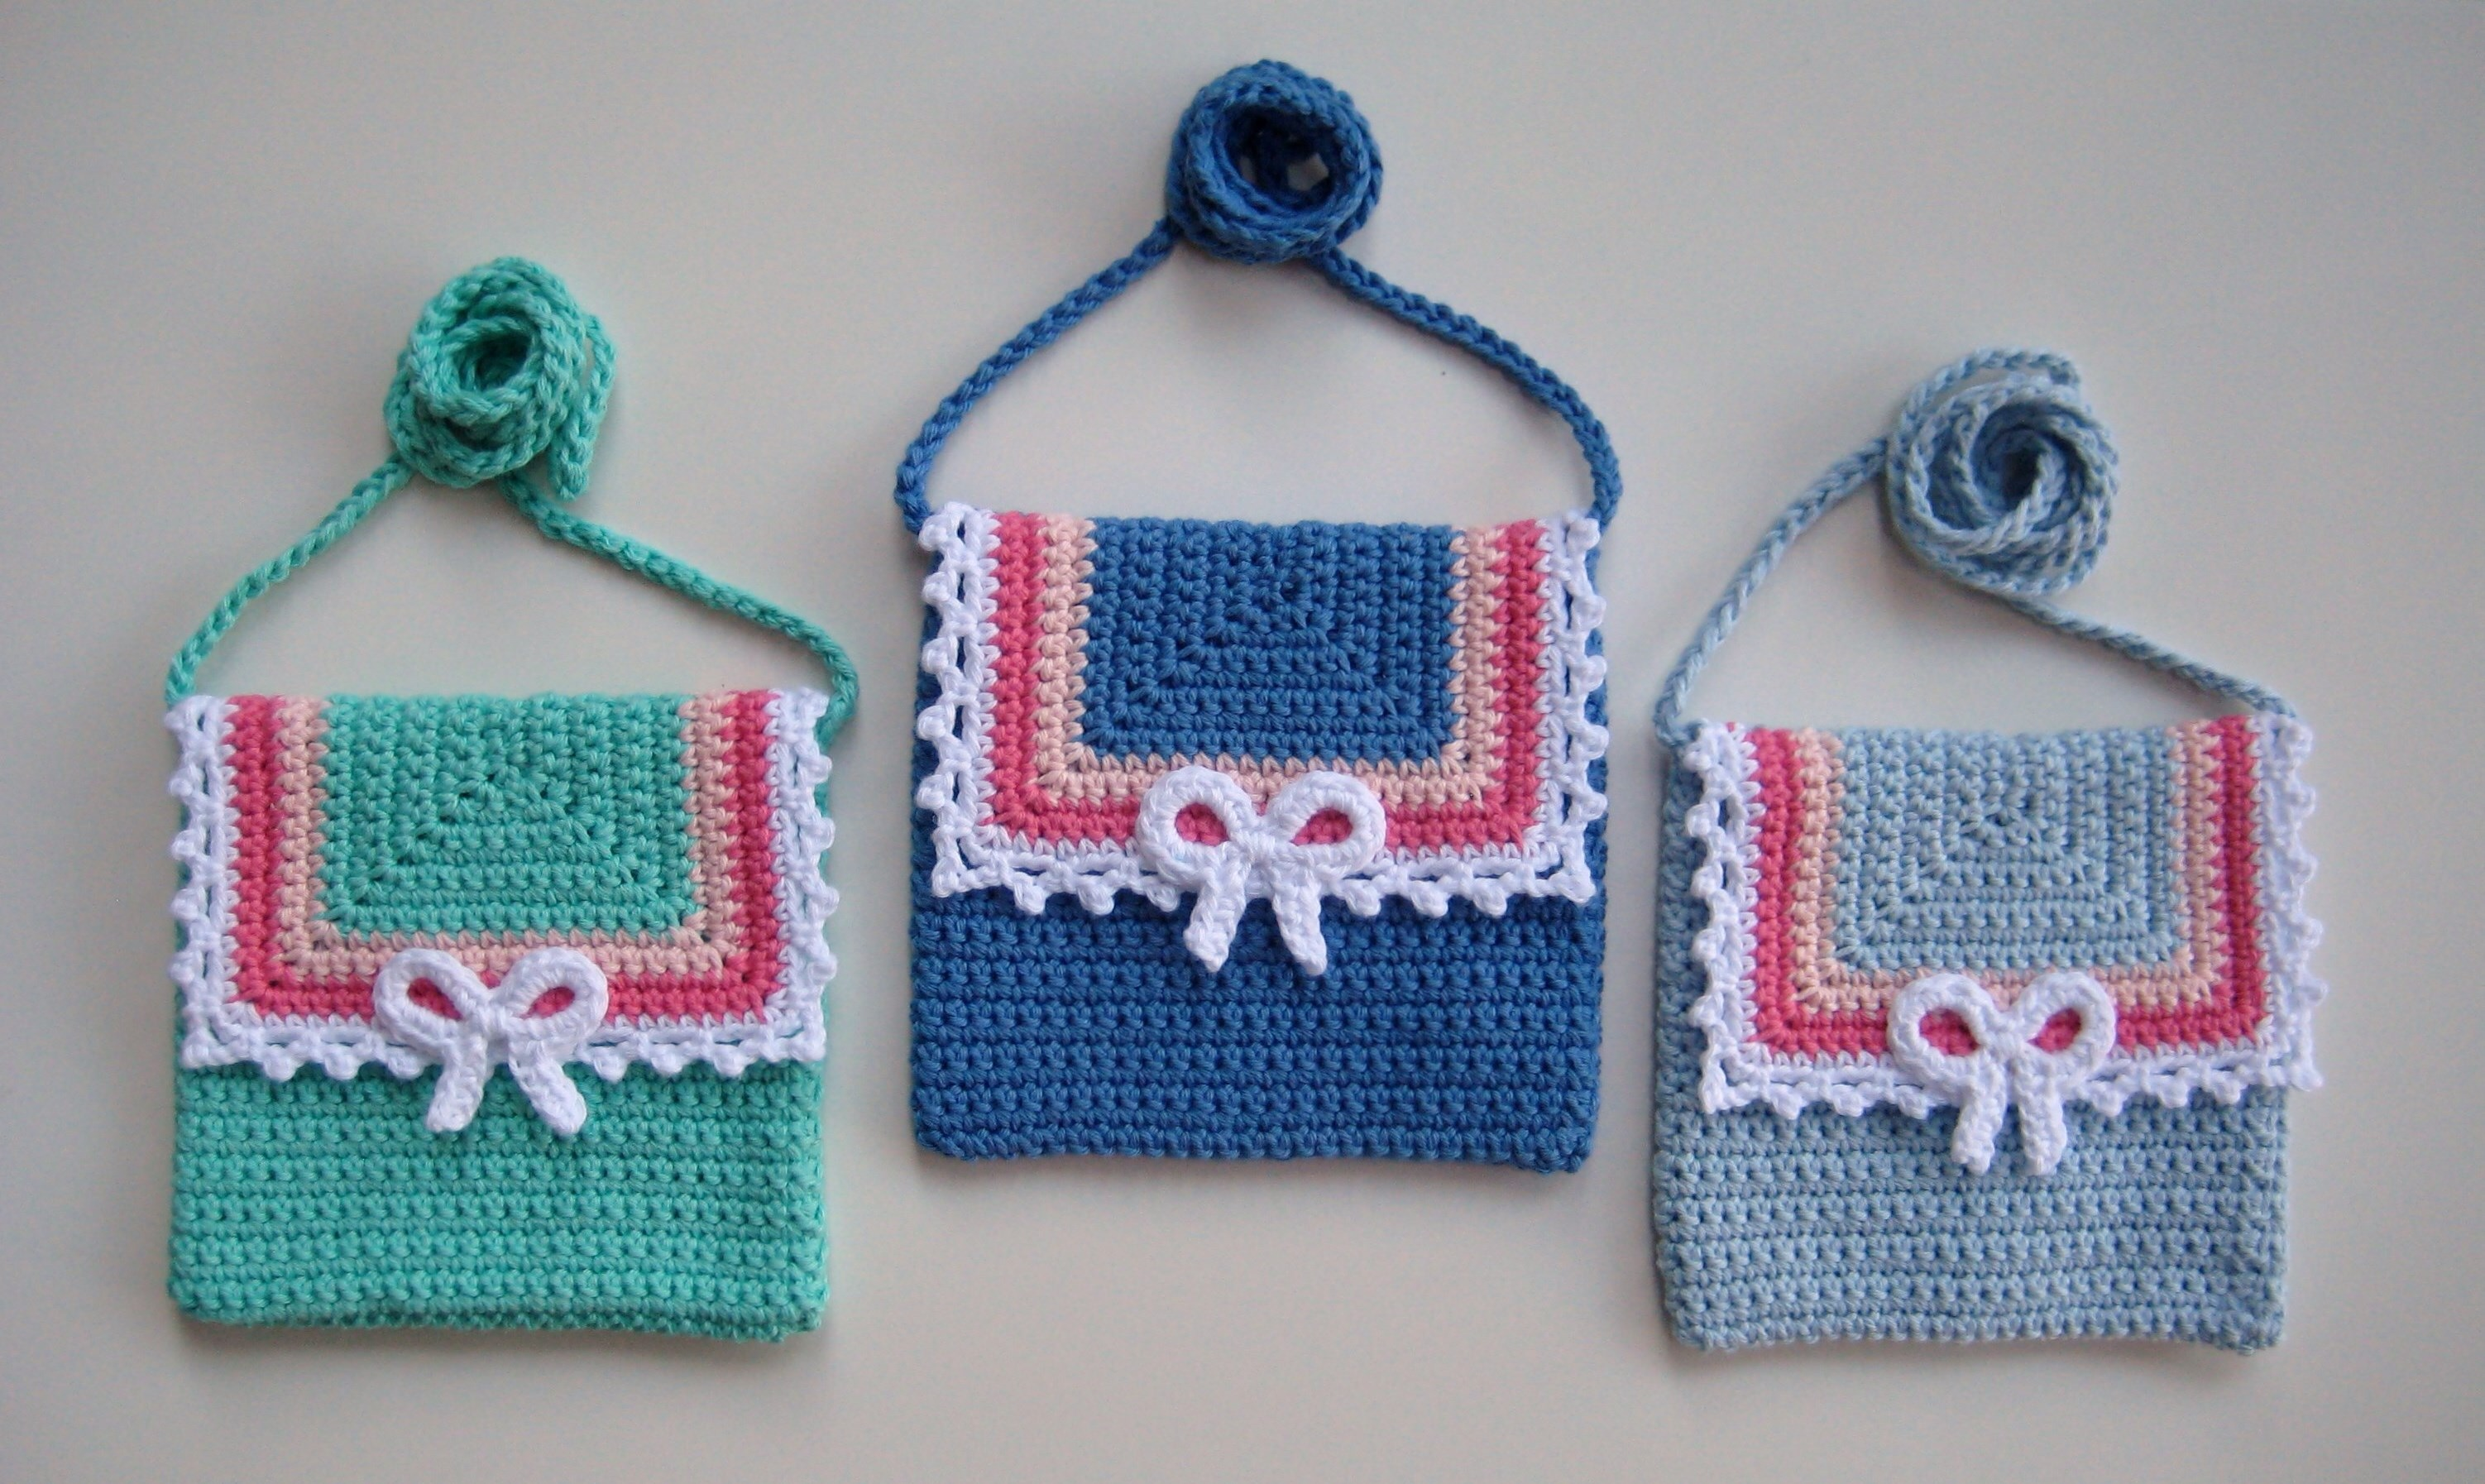 Crochet bag, Lace and Bow bag, Pattern No22, in both UK and US crochet terms